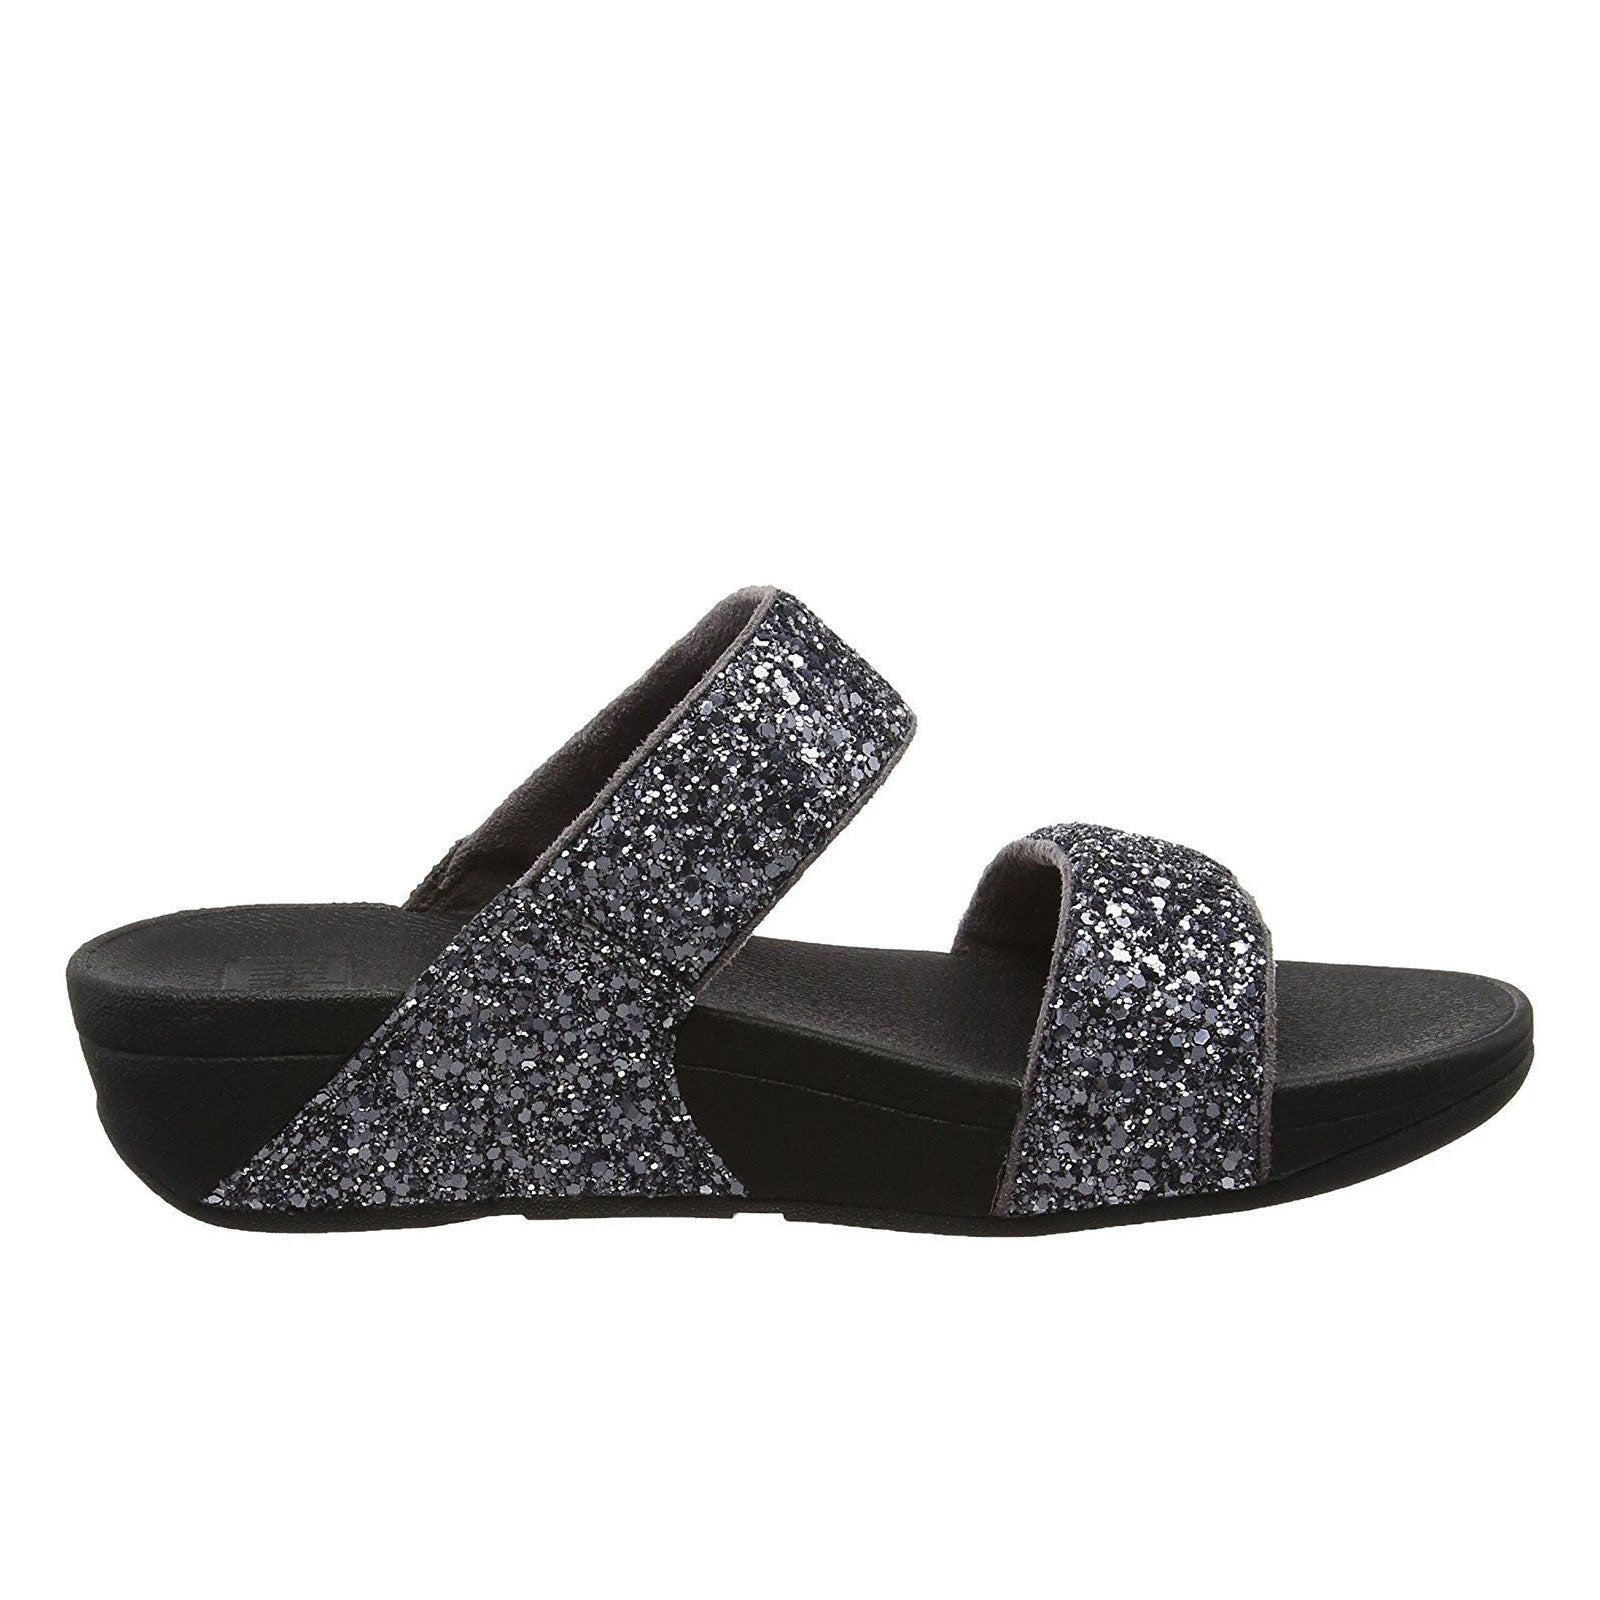 Fitflop Glitterball Slide -Pewter